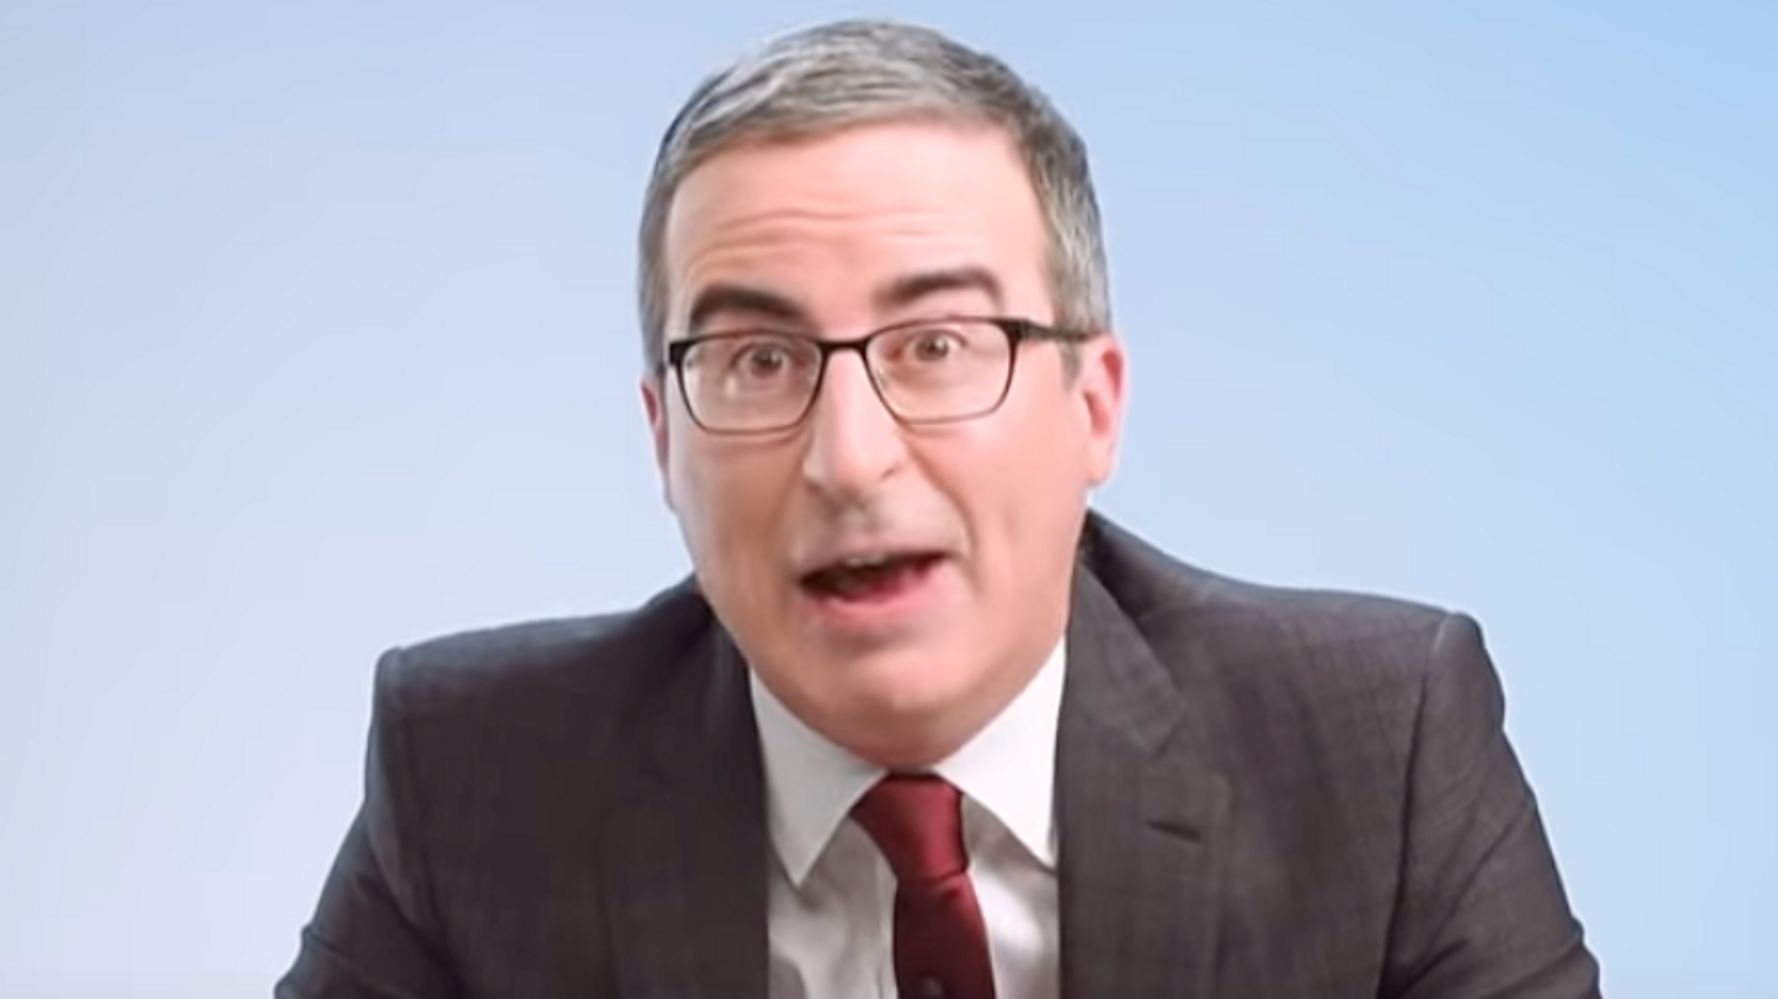 John Oliver Nails The Most Terrifying Part Of Donald Trump's Legacy